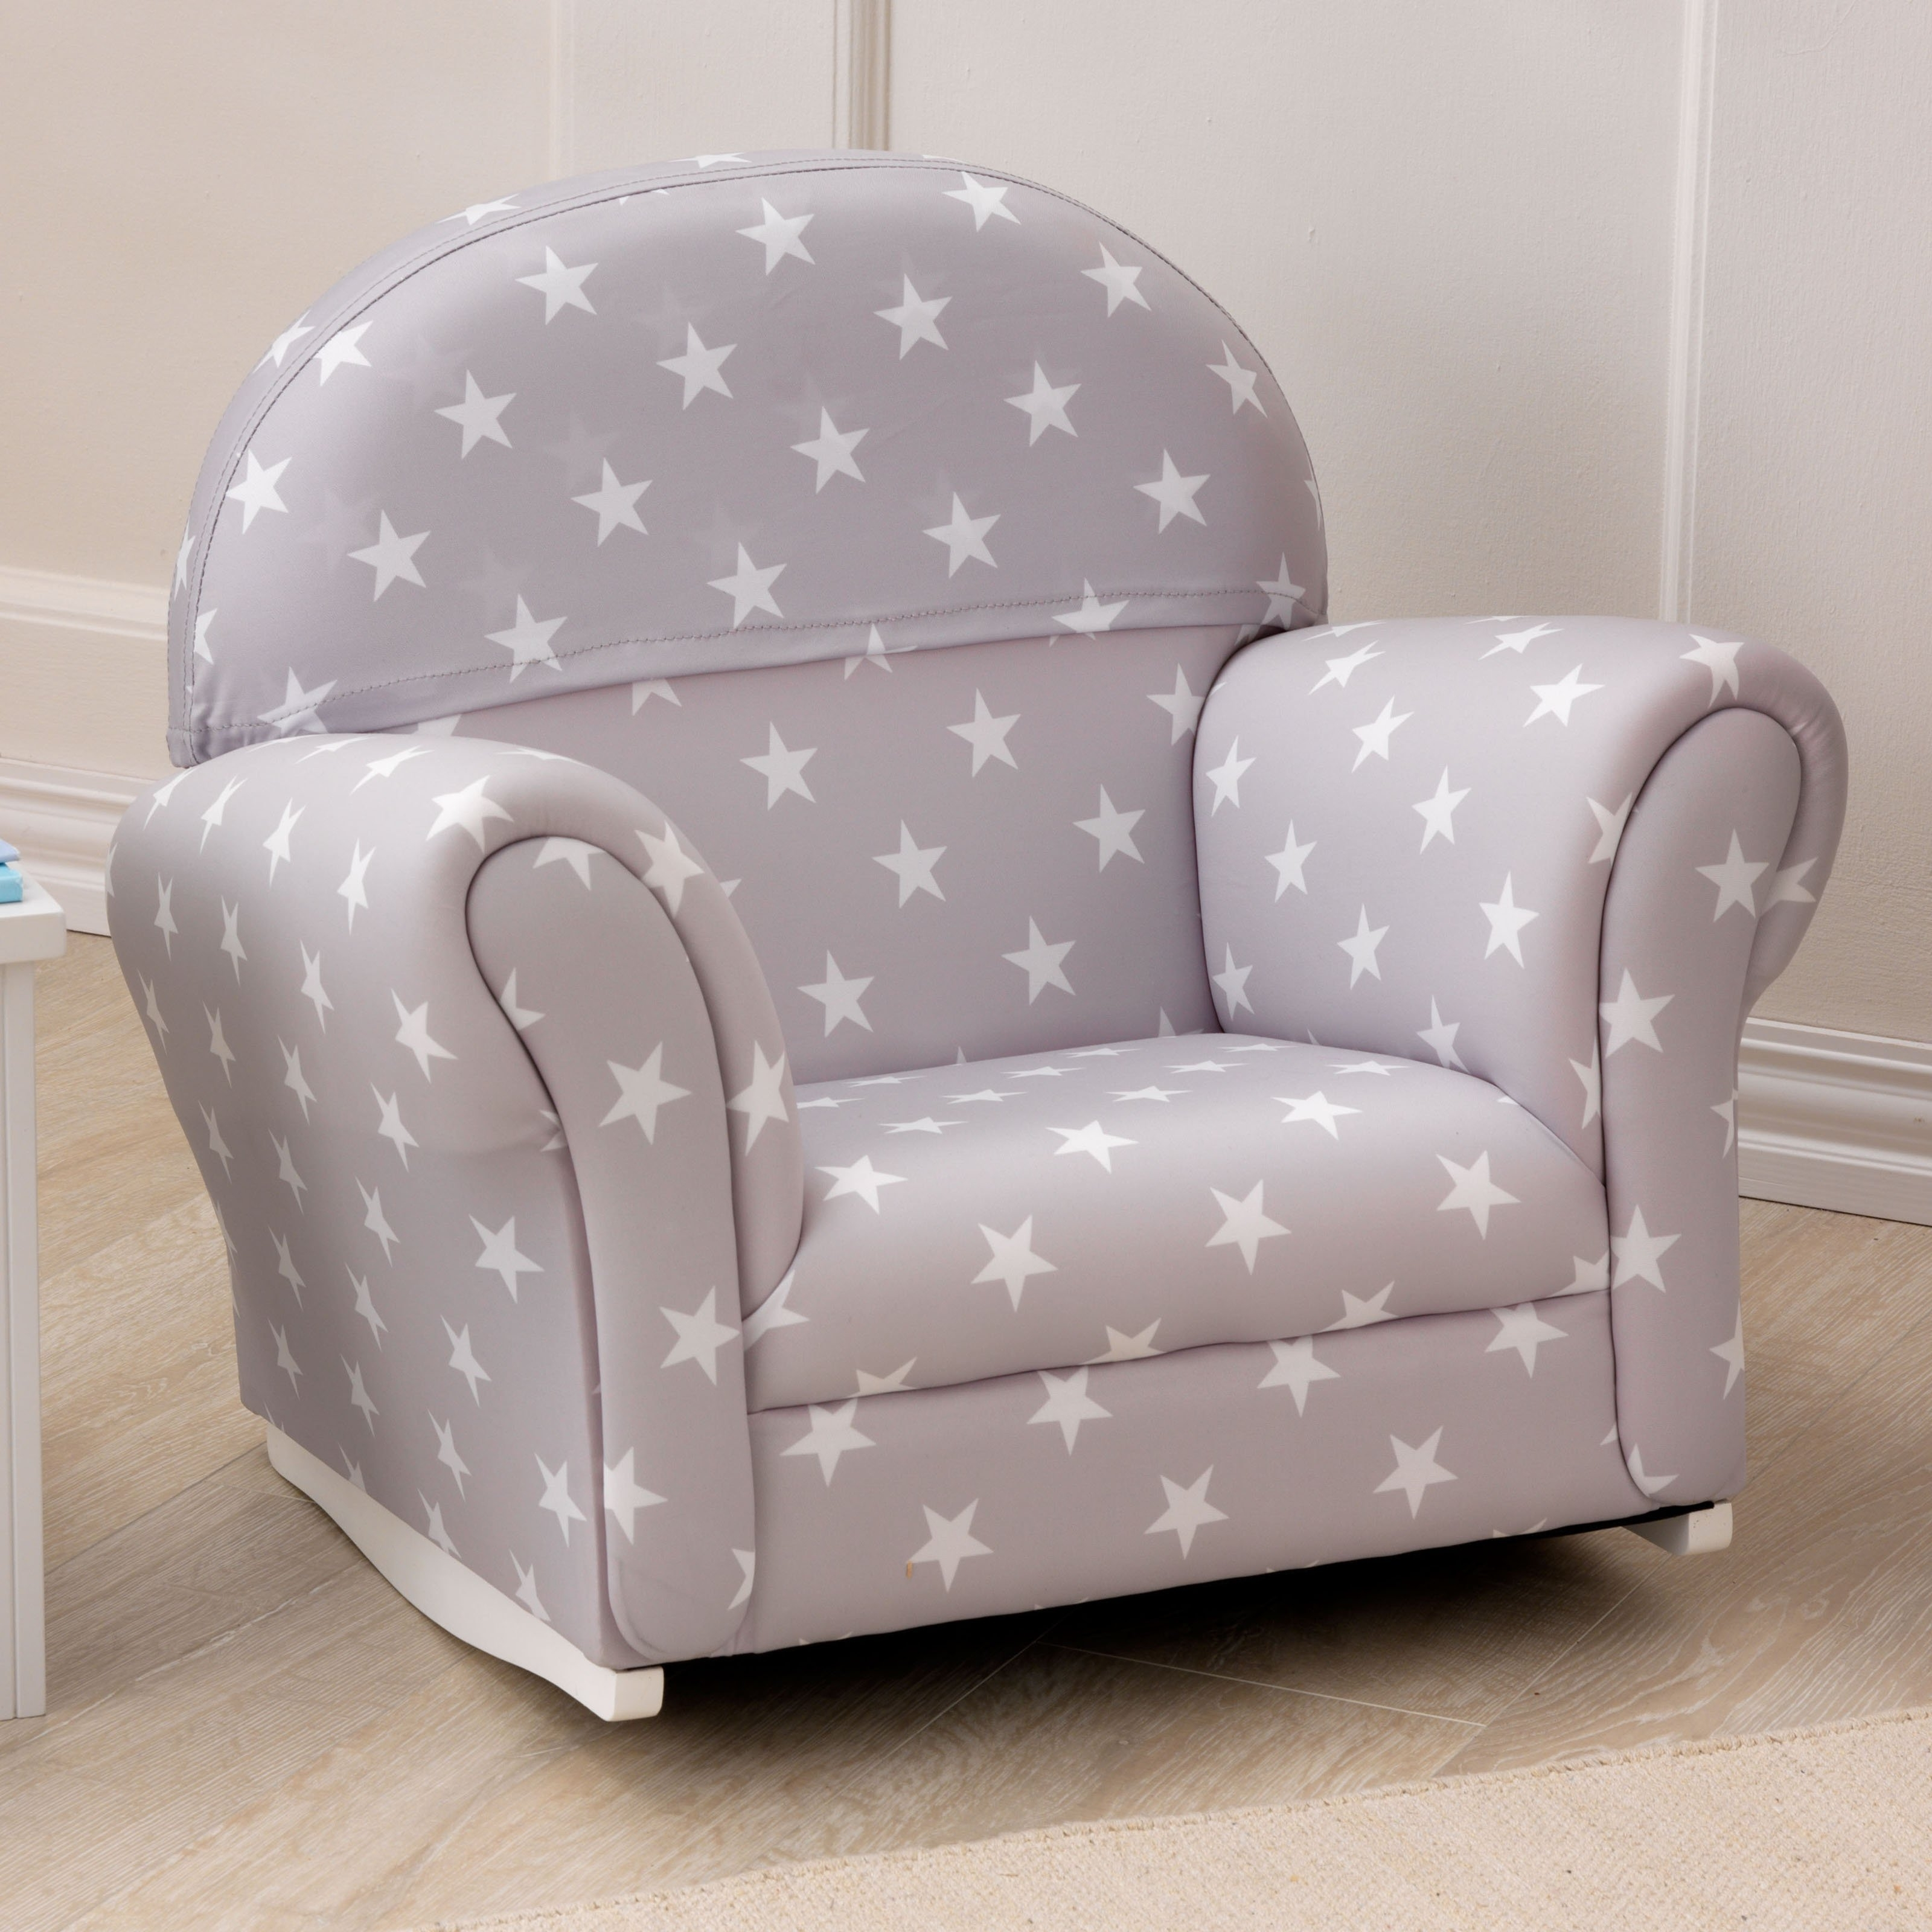 Trendy Personalized Kids Chairs And Sofas Intended For Armchair : Ikea Kids Stool Kids Chairs Ikea Toddler Chair Ikea (View 12 of 15)